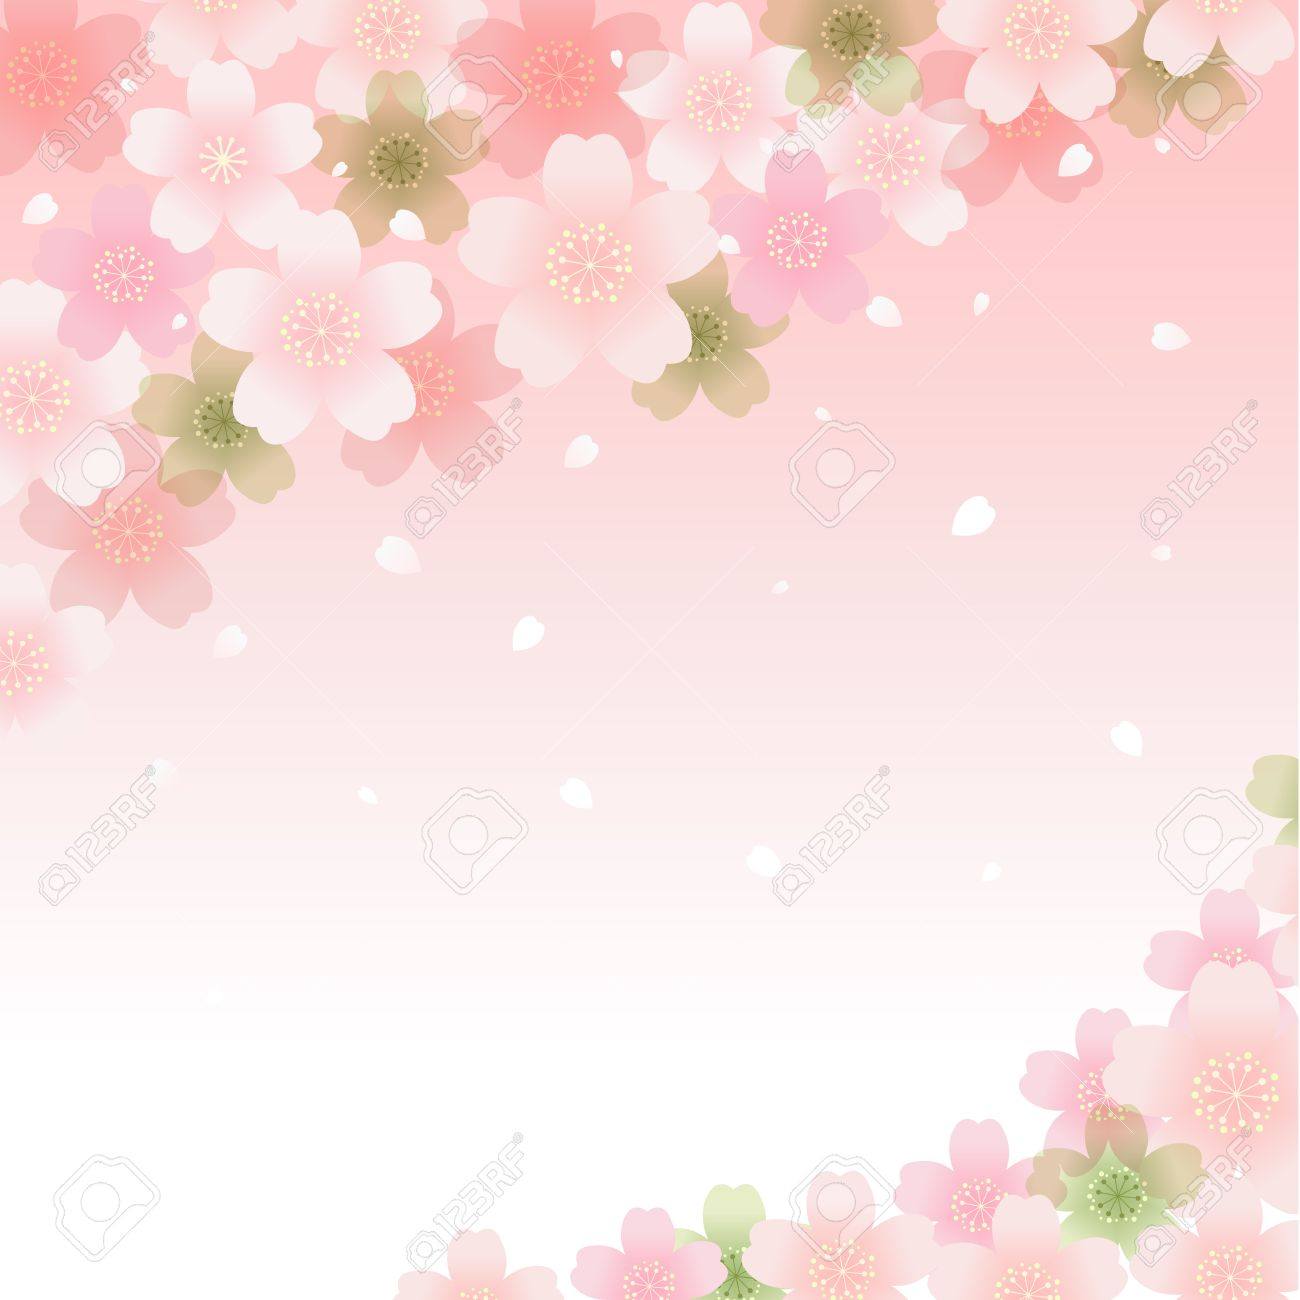 Sakura Cherry Blossom Background Transparency, Gradients, Clipping ...